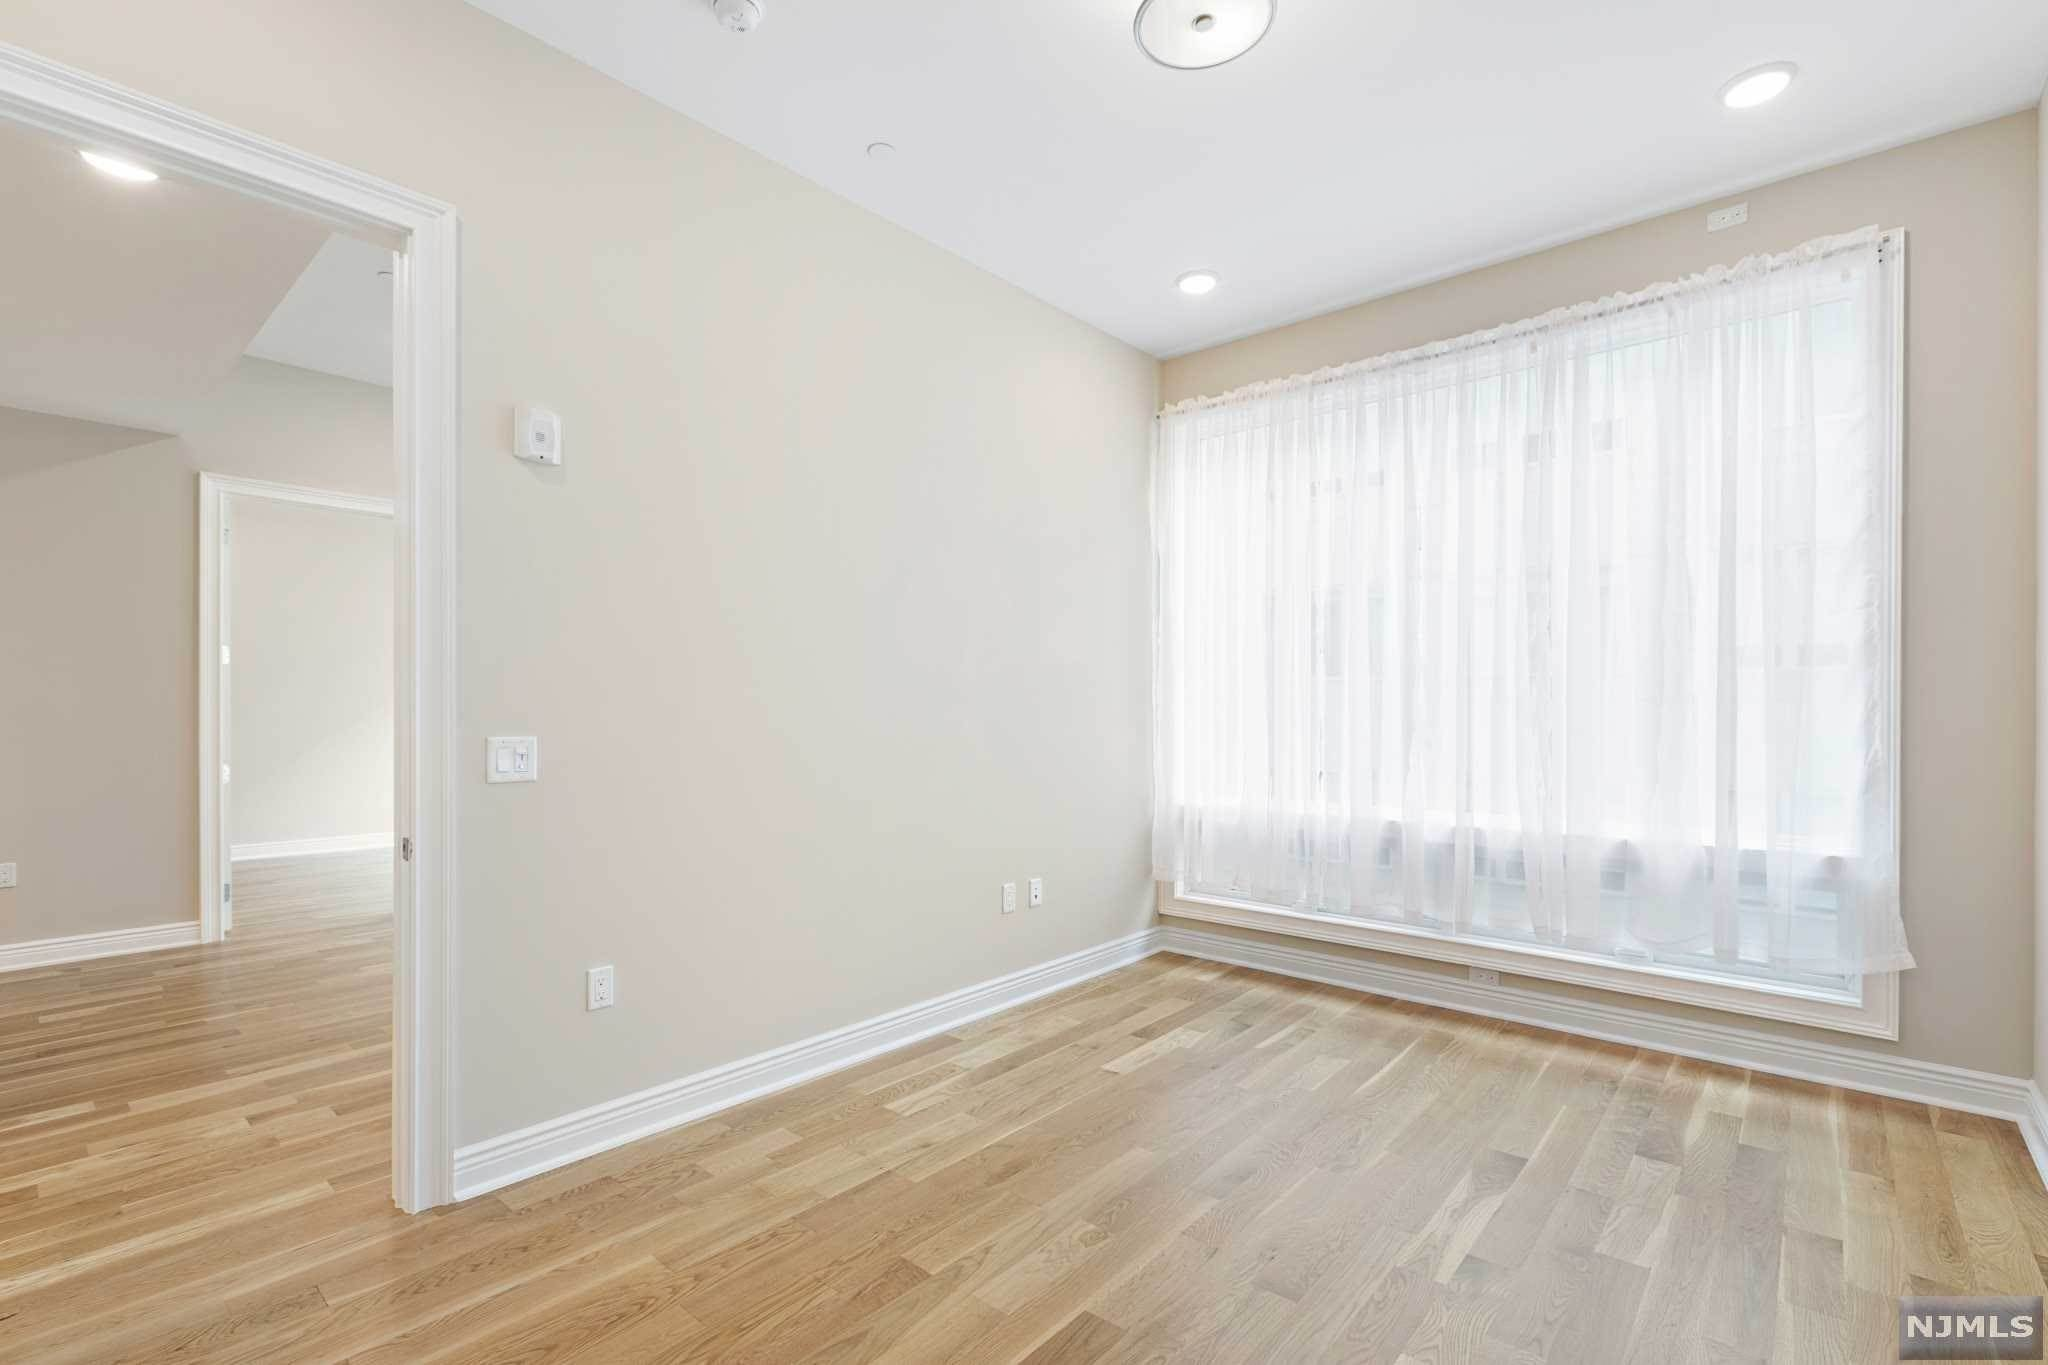 12. Condominium for Sale at 9 Somerset Lane #421 Edgewater, New Jersey, 07020 United States